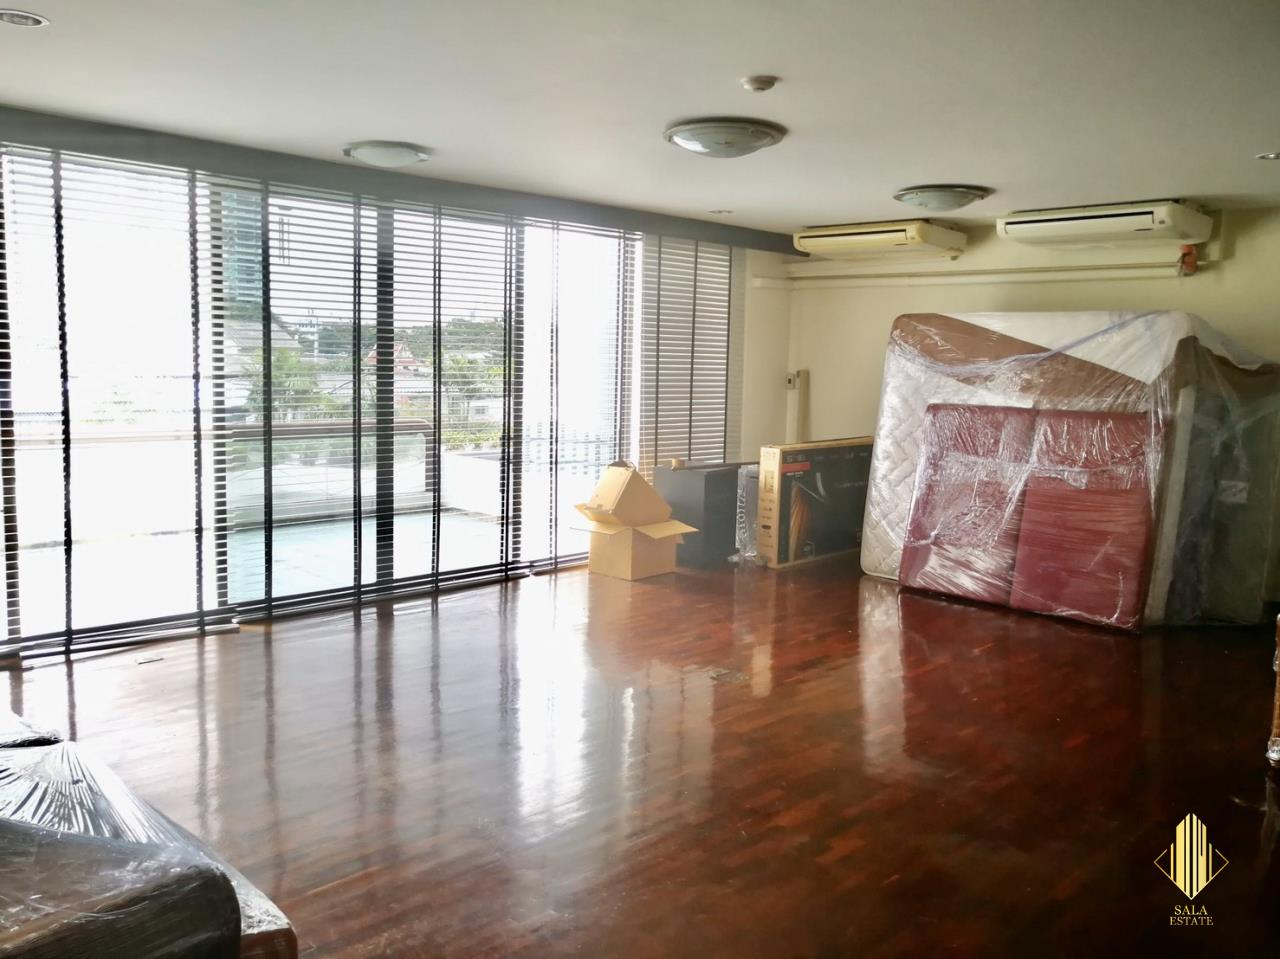 SALA ESTATE Agency's (FOR RENT) TRIDHOS CITY MARINA – RIVERSIDE - NEAR ICON SIAM-PET ALLOWED, 3 BEDROOMS 4 BATHROOMS, 4 FLOORS, 300 SQM, FULLY FURNISHED, CITY VIEW 2